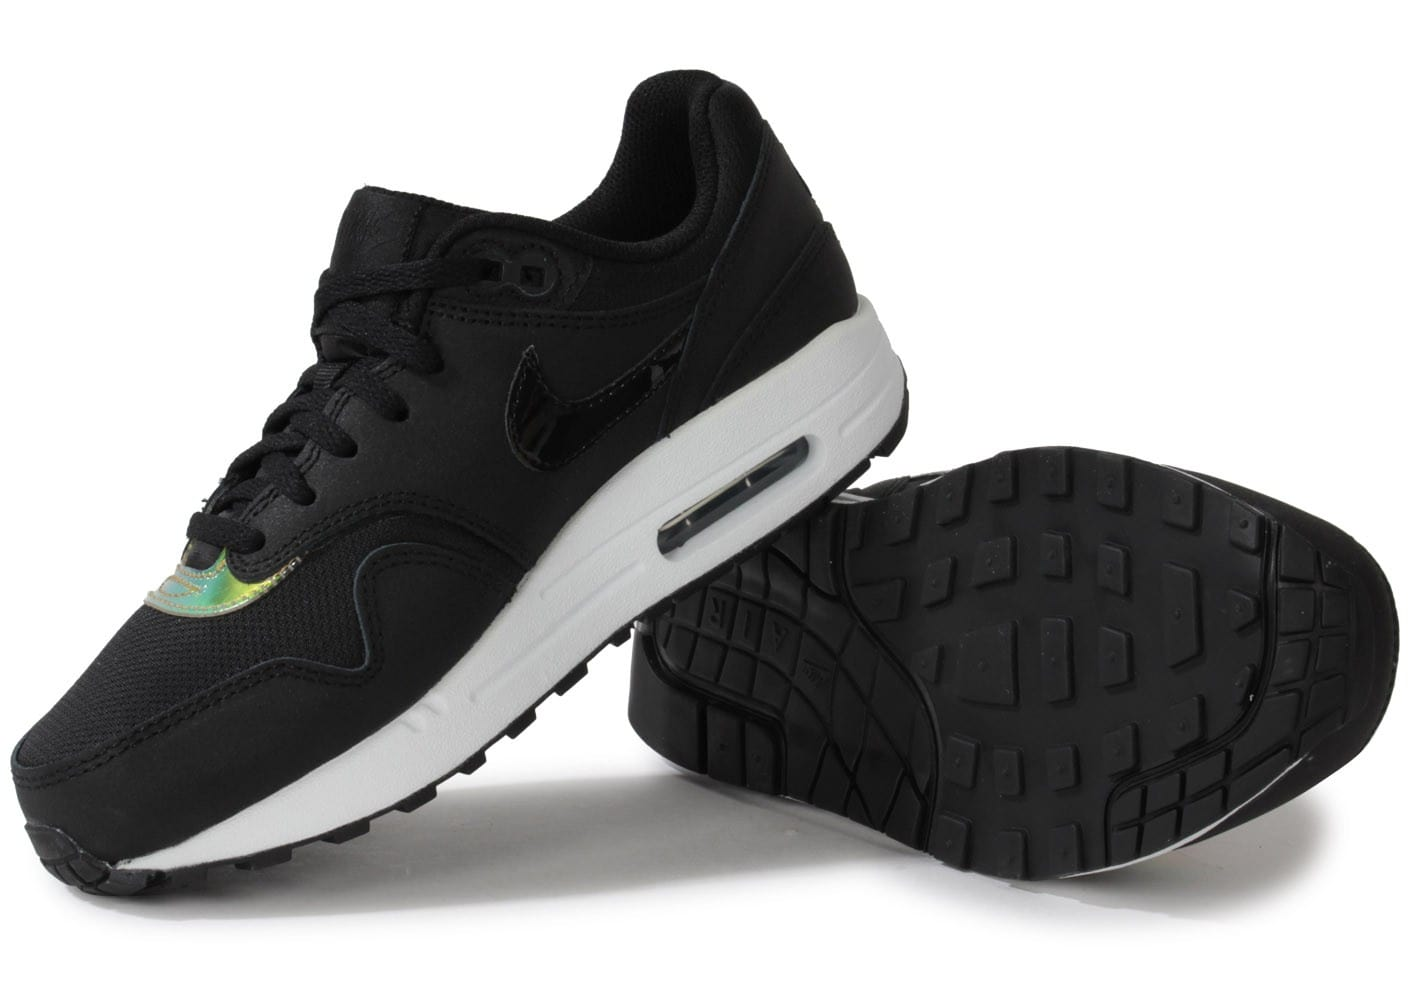 hot sale online 96f74 4d2a6 ... buy 440e2 8fb8e Chaussures Nike Air Max 1 Iridescent Junior vue  intérieure .